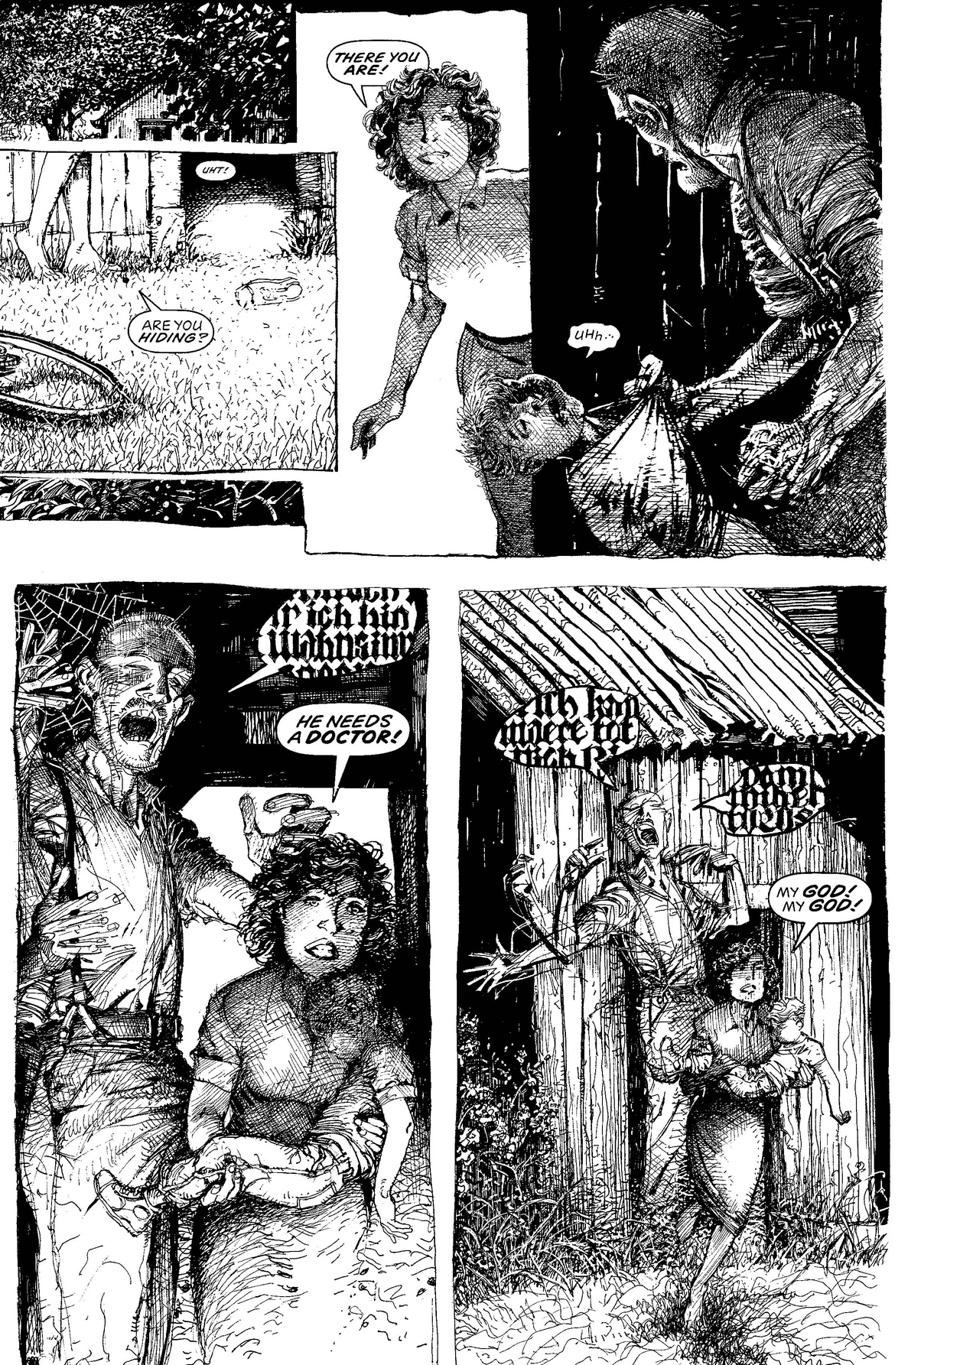 Page from Monsters by Barry Windsor Smith